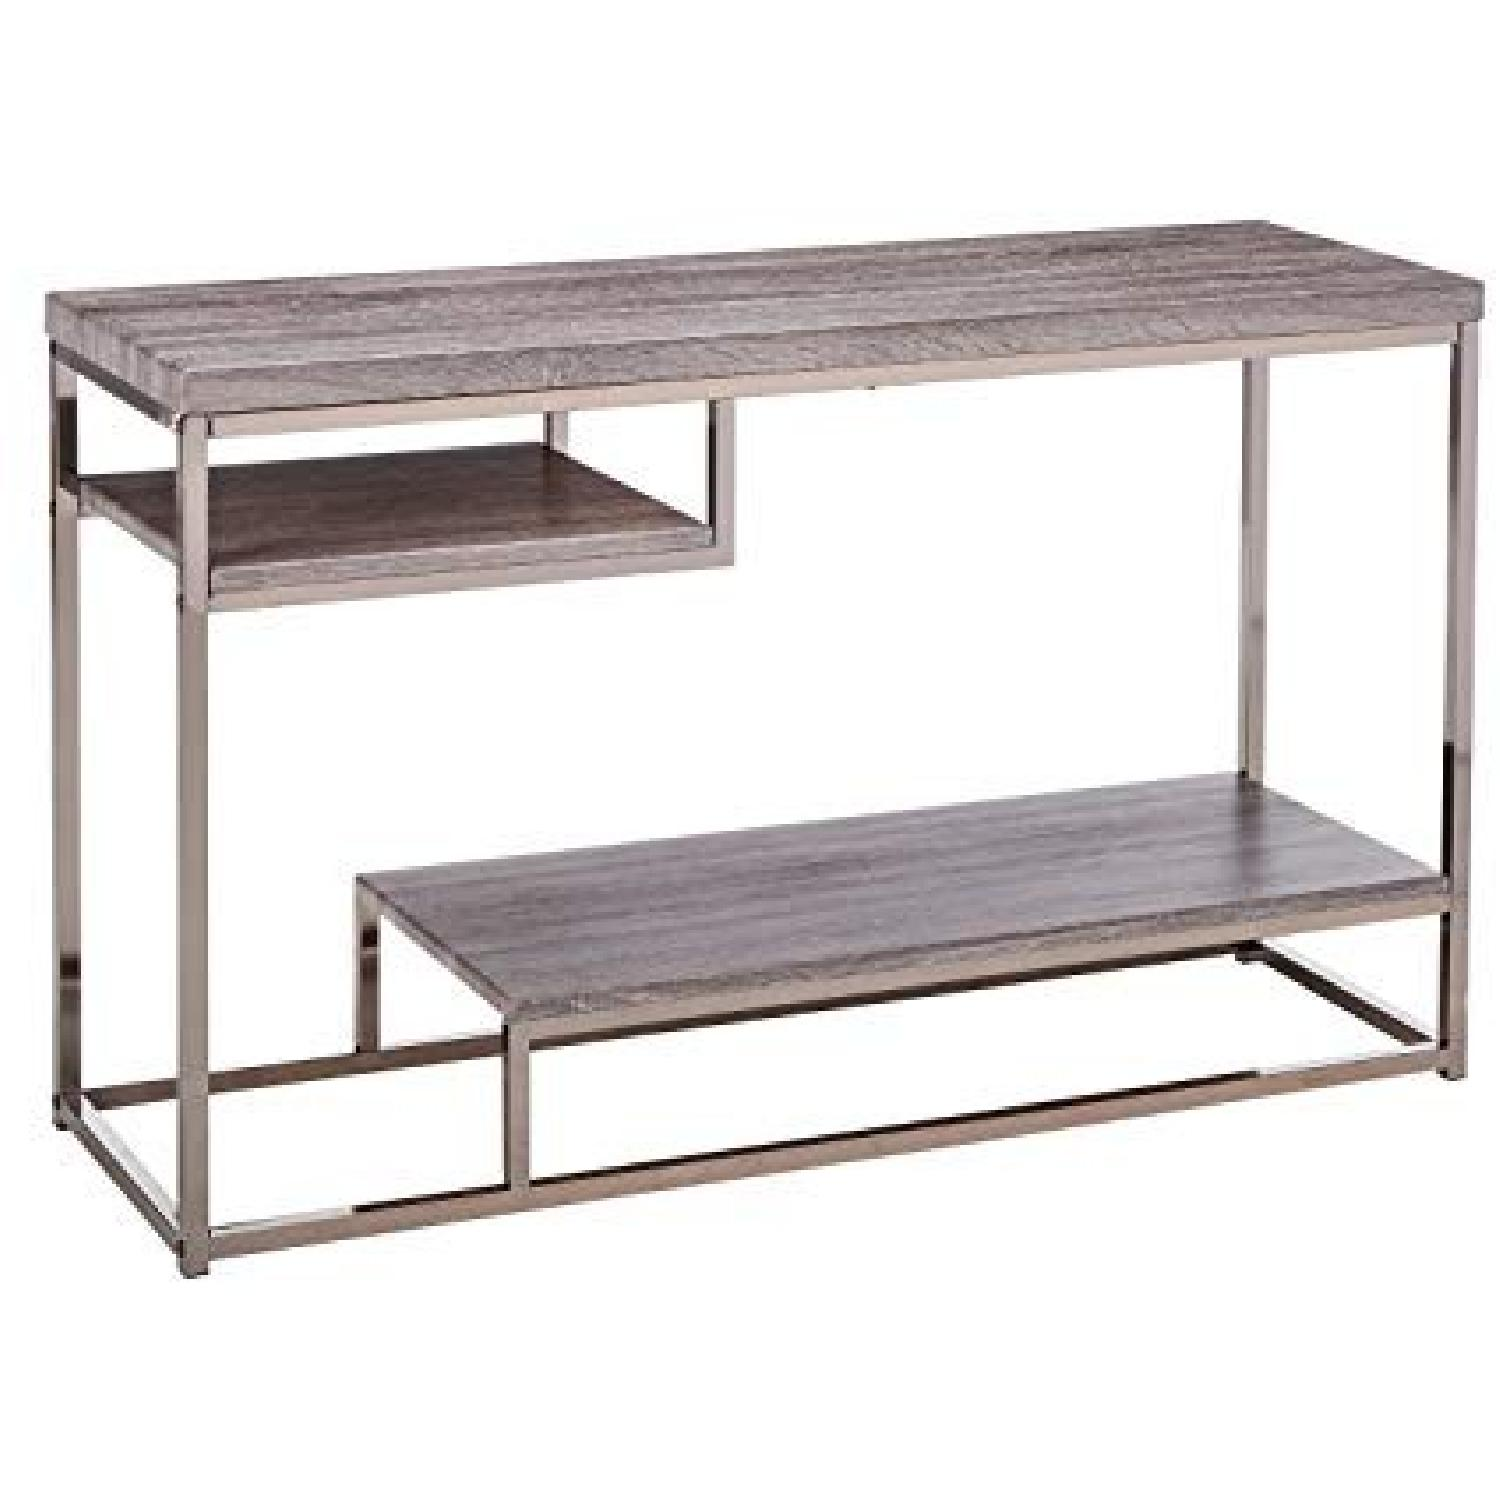 Withered Grey Contemporary Style Sofa Table - AptDeco